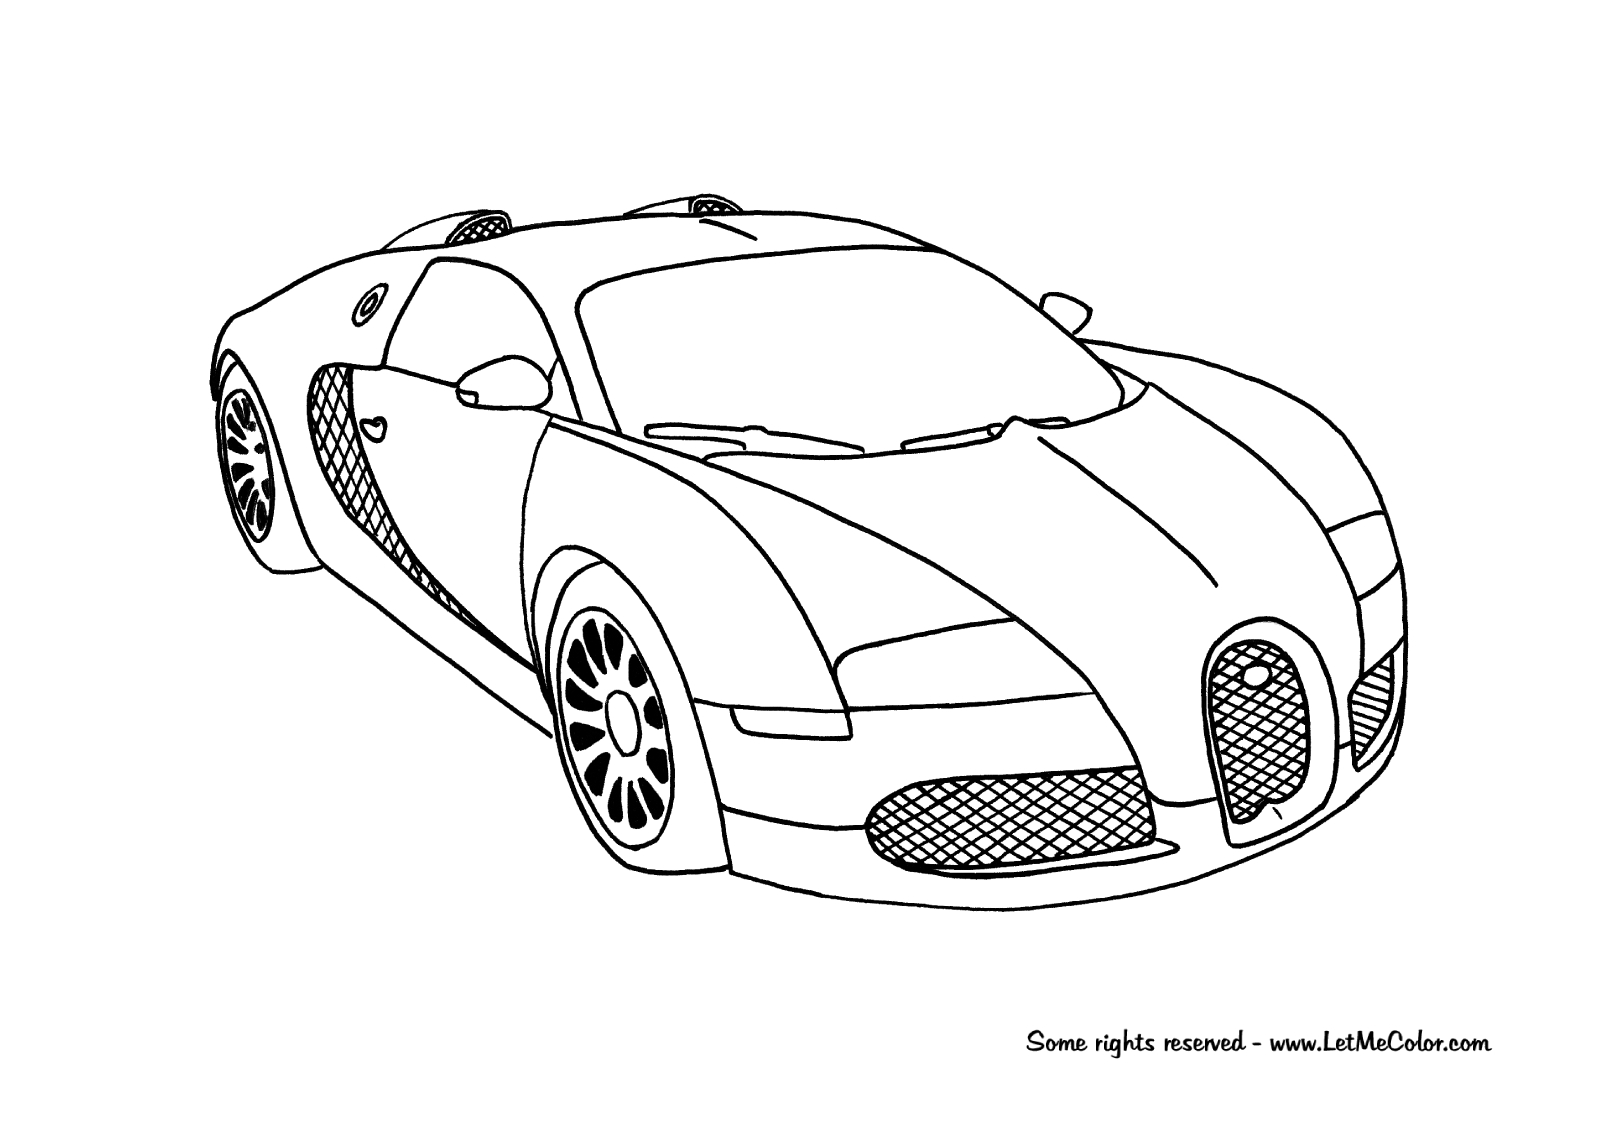 Mclaren Coloring Pages At Getcolorings Com Auto Electrical Wiring